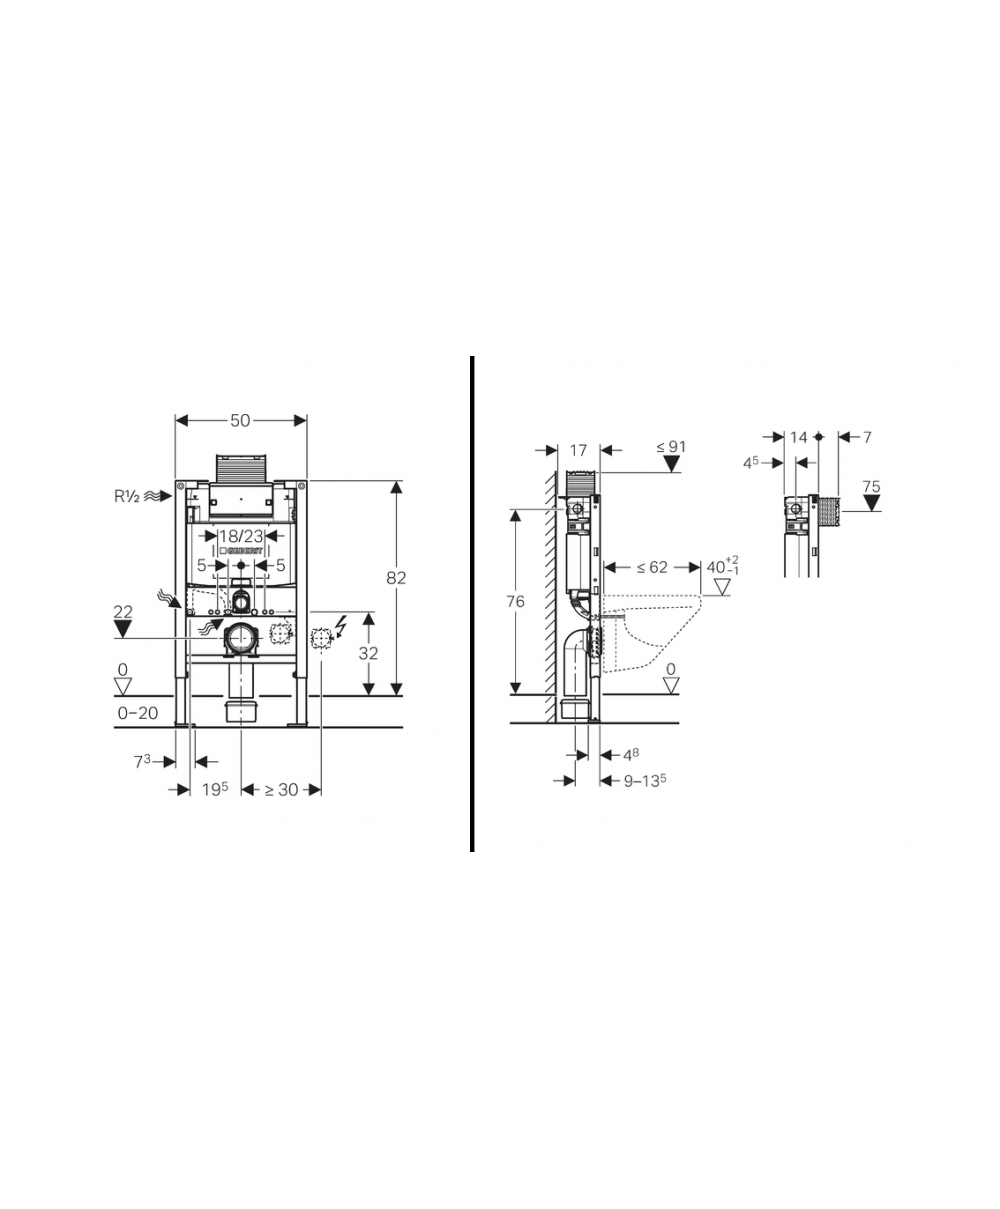 Geberit duofix frame for wall hung wc h82 with omega cistern 12cm - Geberit Duofix Frame For Wall Hung Wc H82 With Omega Cistern 12cm 1